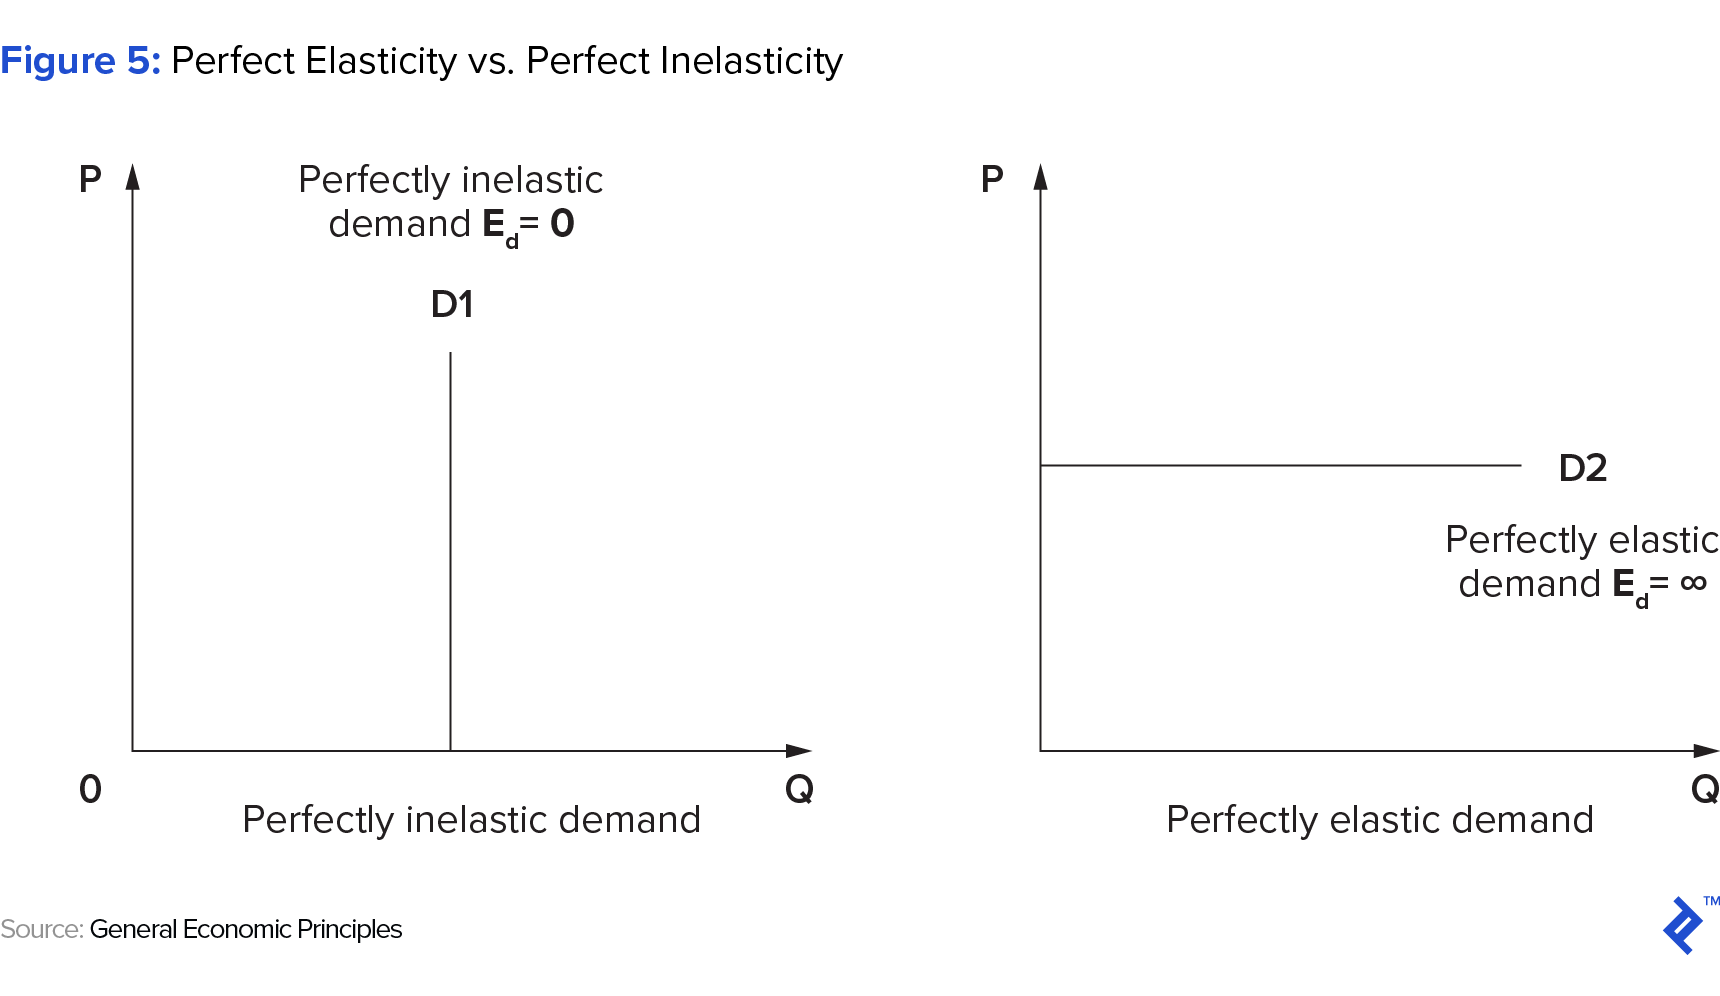 Figure 5: Perfect Elasticity vs. Perfect Inelasticity